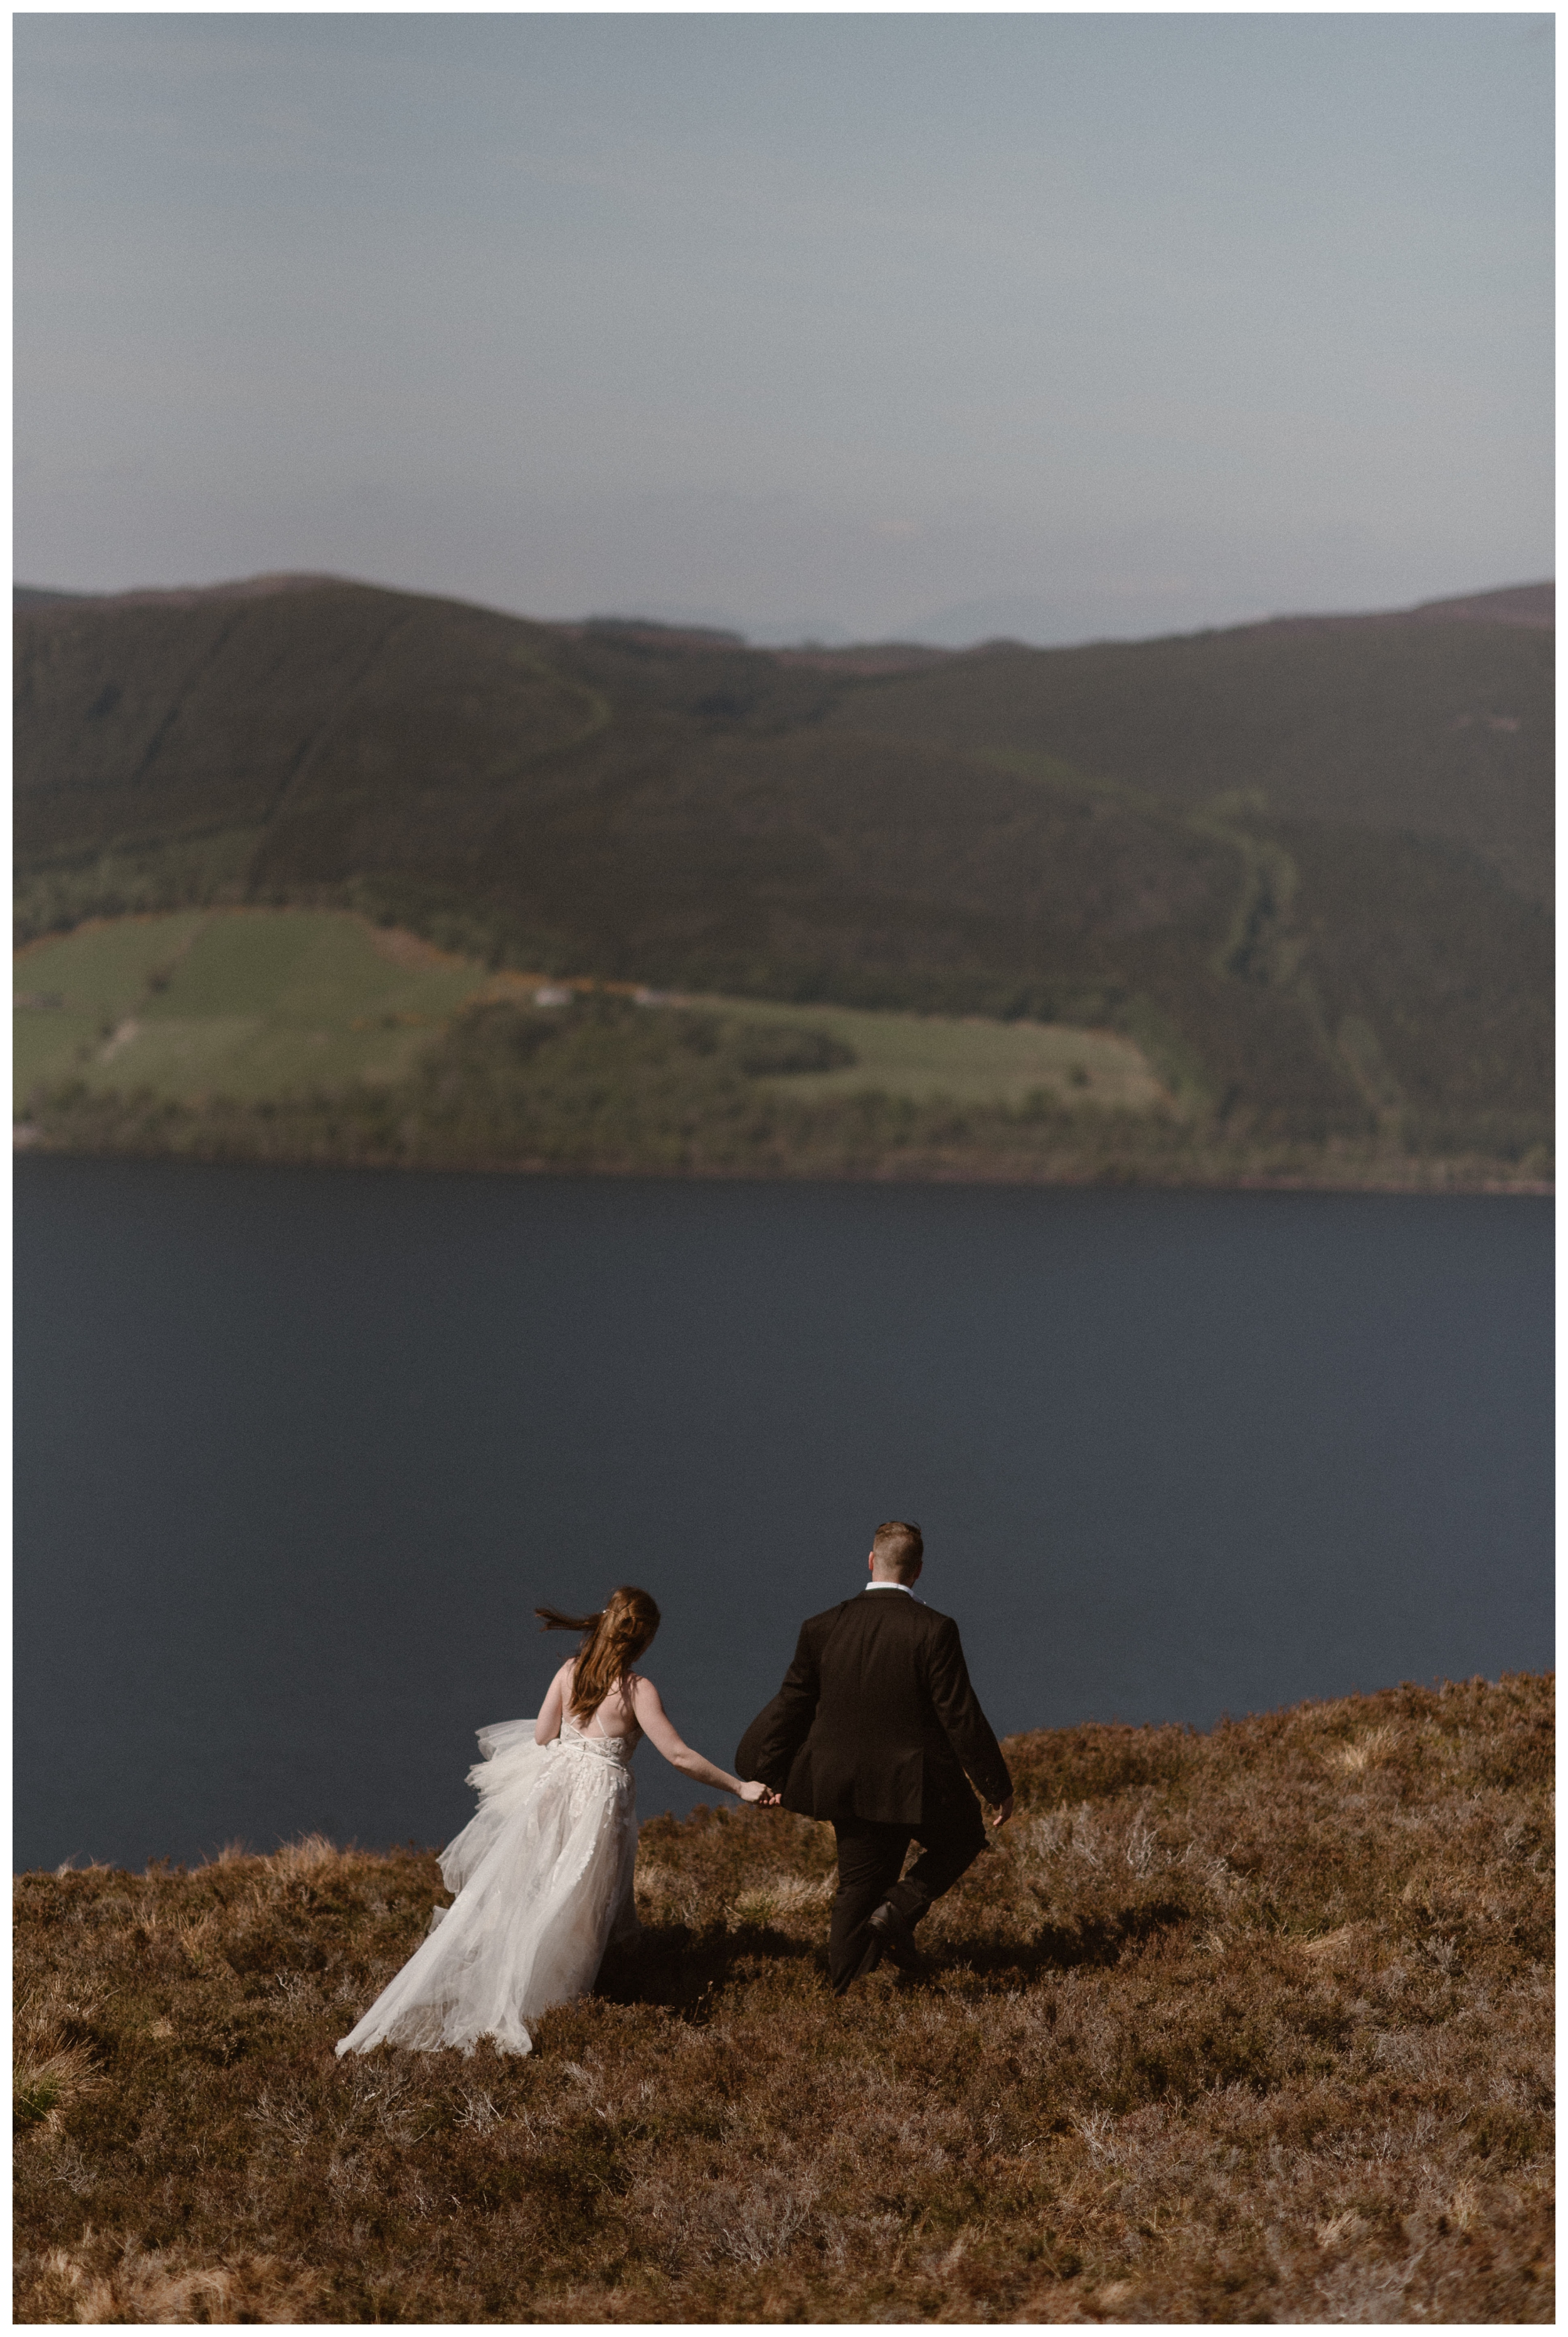 As we explored the north shores of Loch Ness in the Scottish Highlands following Elissa and Daniel's destination elopement, we could see Urquhart Castle and where the loch empties towards the North Sea. Photo by Maddie Mae, Adventure Instead.